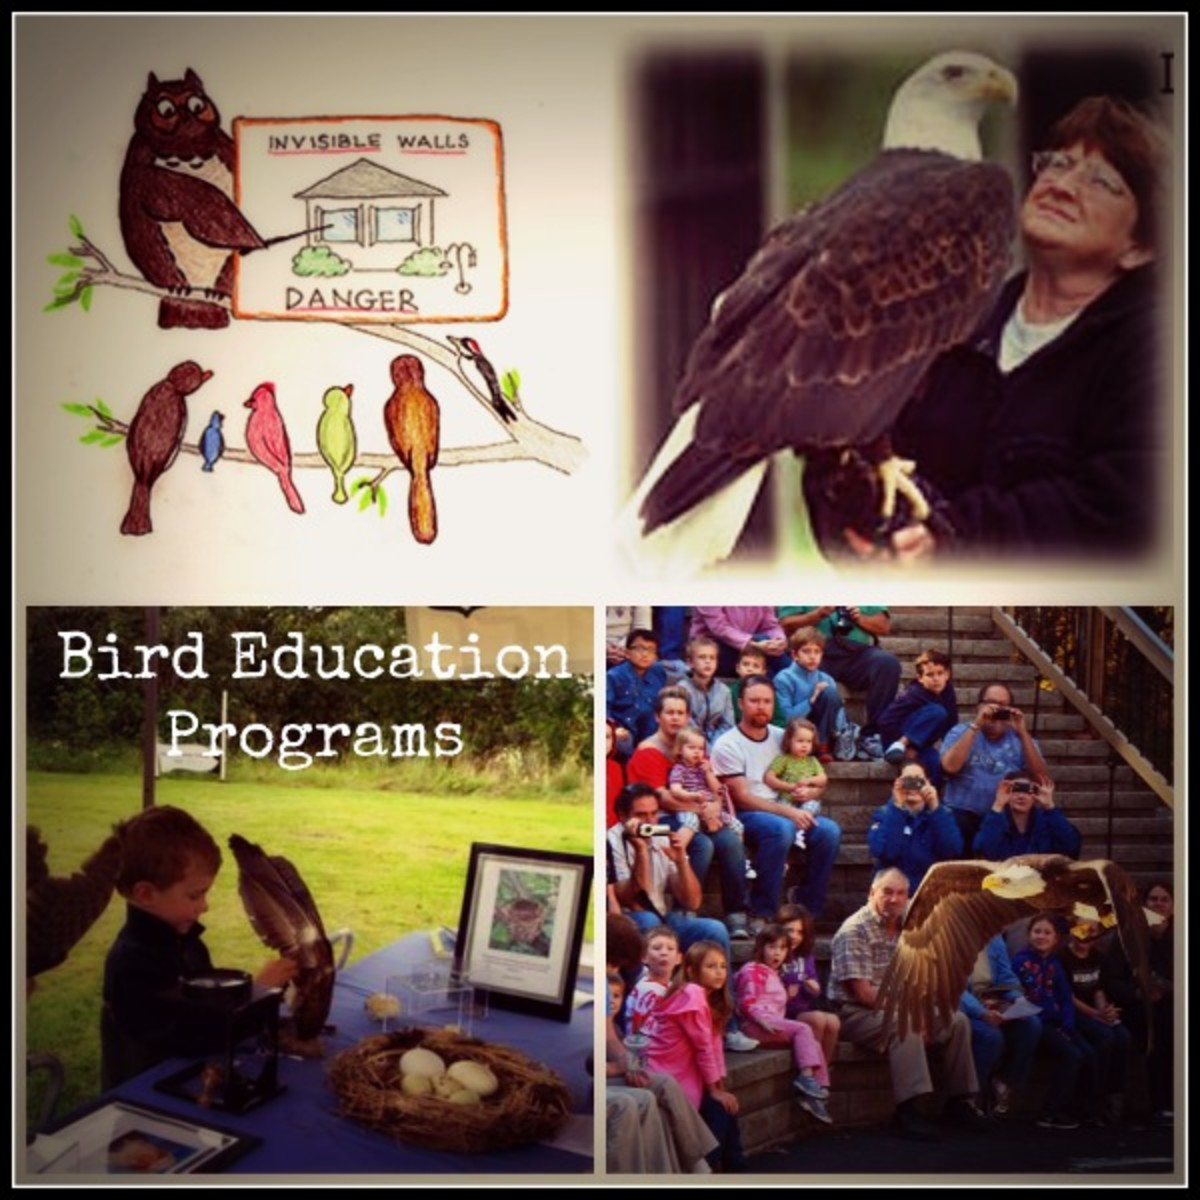 Arrange Formal/ Informal Bird Education Programs in Schools